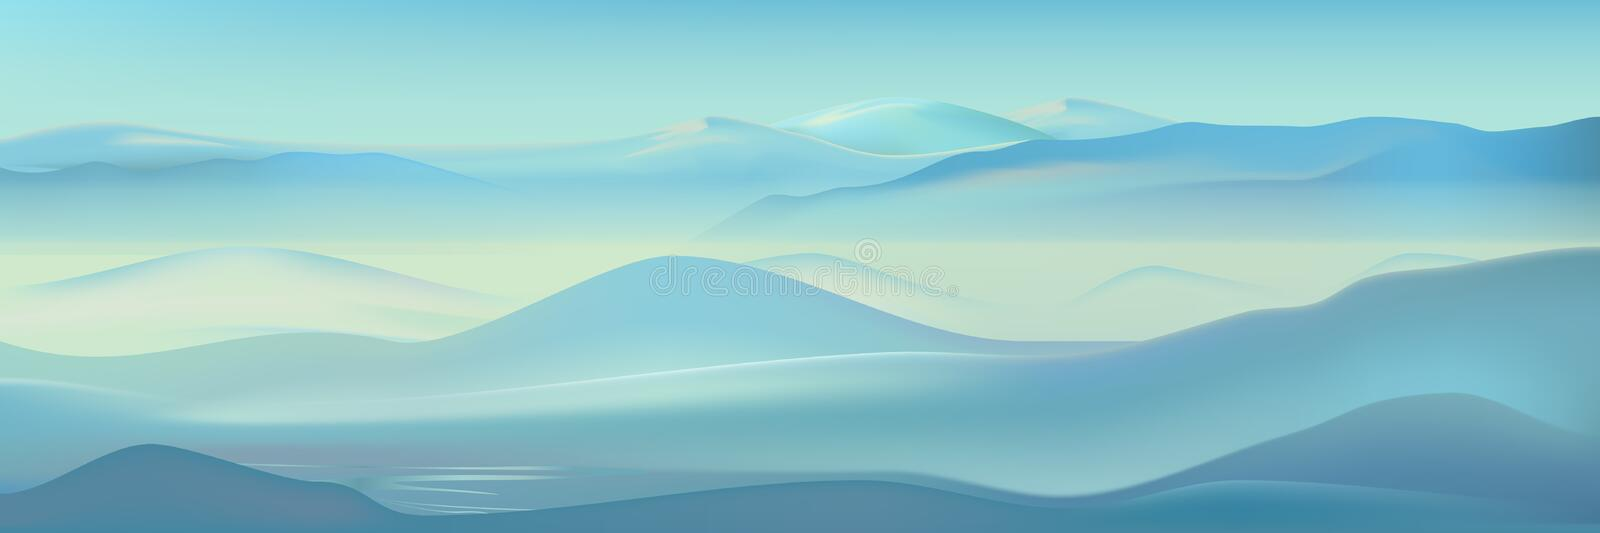 Vector realistic misty mountains landscape. Blue nature background. Beautiful winter mountains silhouette vector illustration